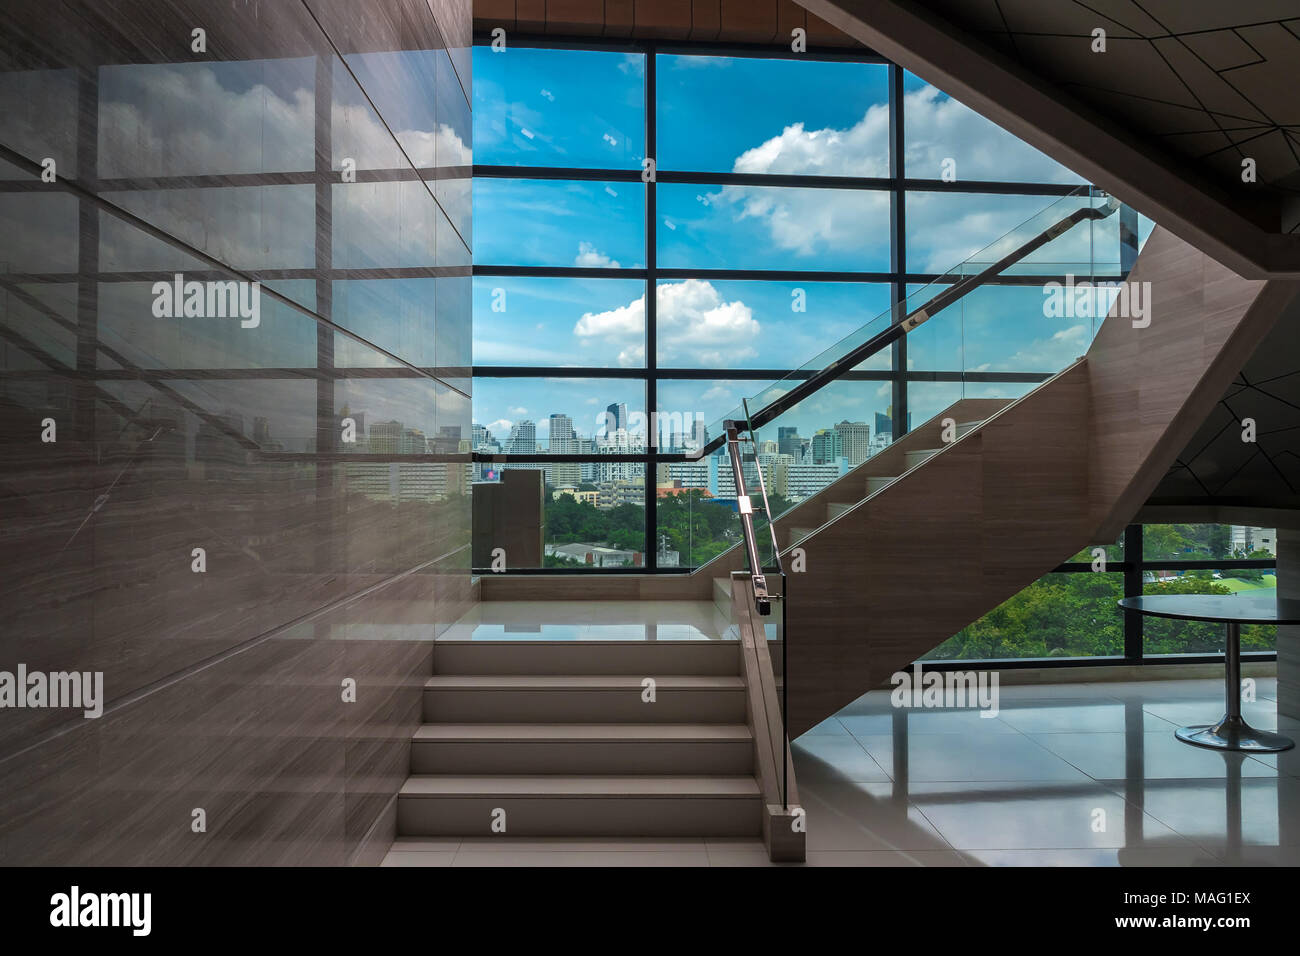 Luxury Staircase In Office Buildings With Cityscape Over From Windows Glass  , Indoor Stairs